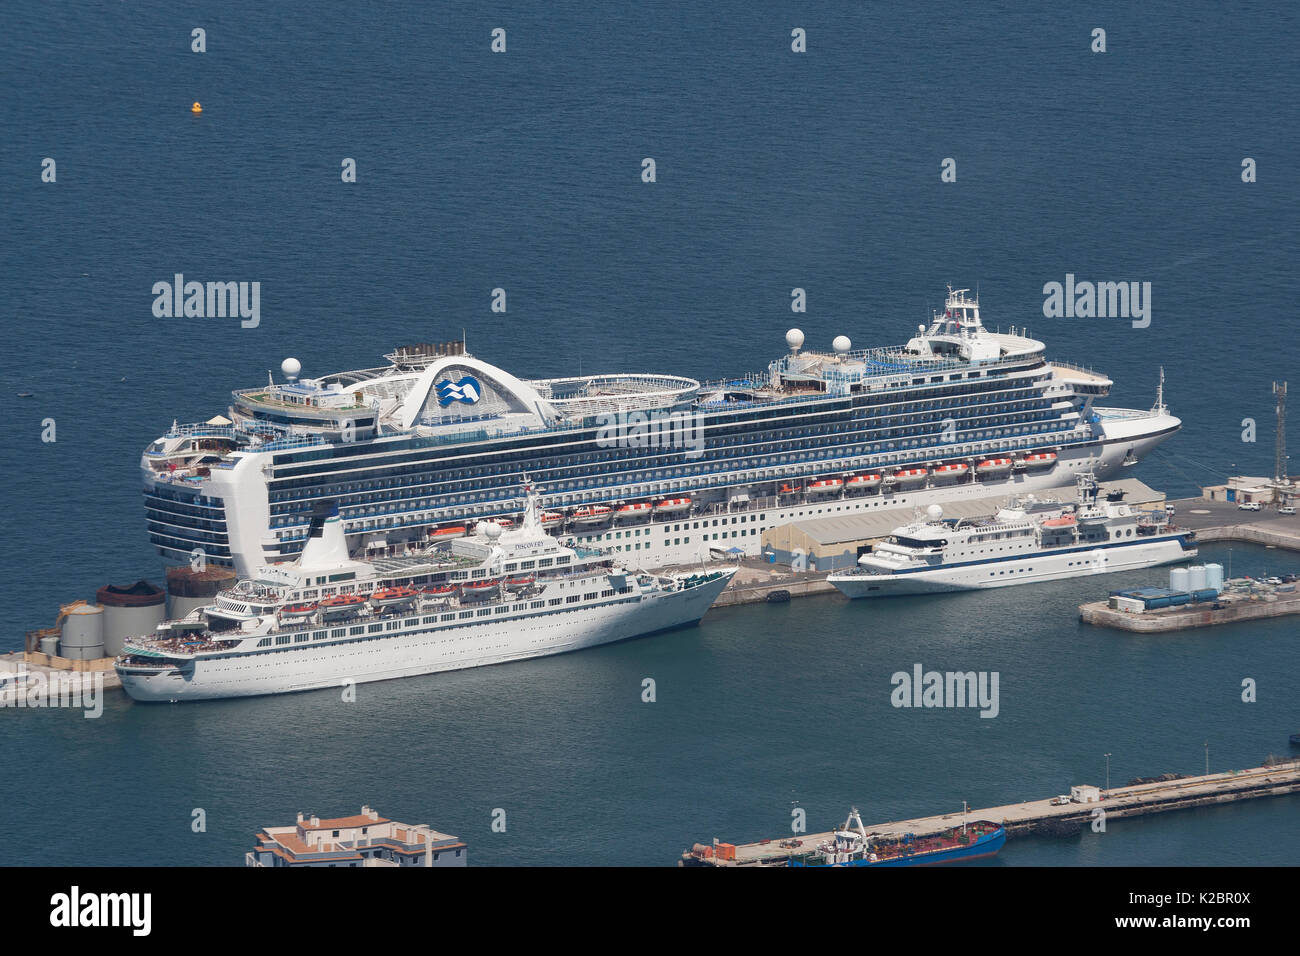 Crown Princess (largest) with Discovery and the Clipper Odyssey (smallest, a 120 passenger vessel) in Gibraltar Harbour, May 2012. All non-editorial uses must be cleared individually. - Stock Image